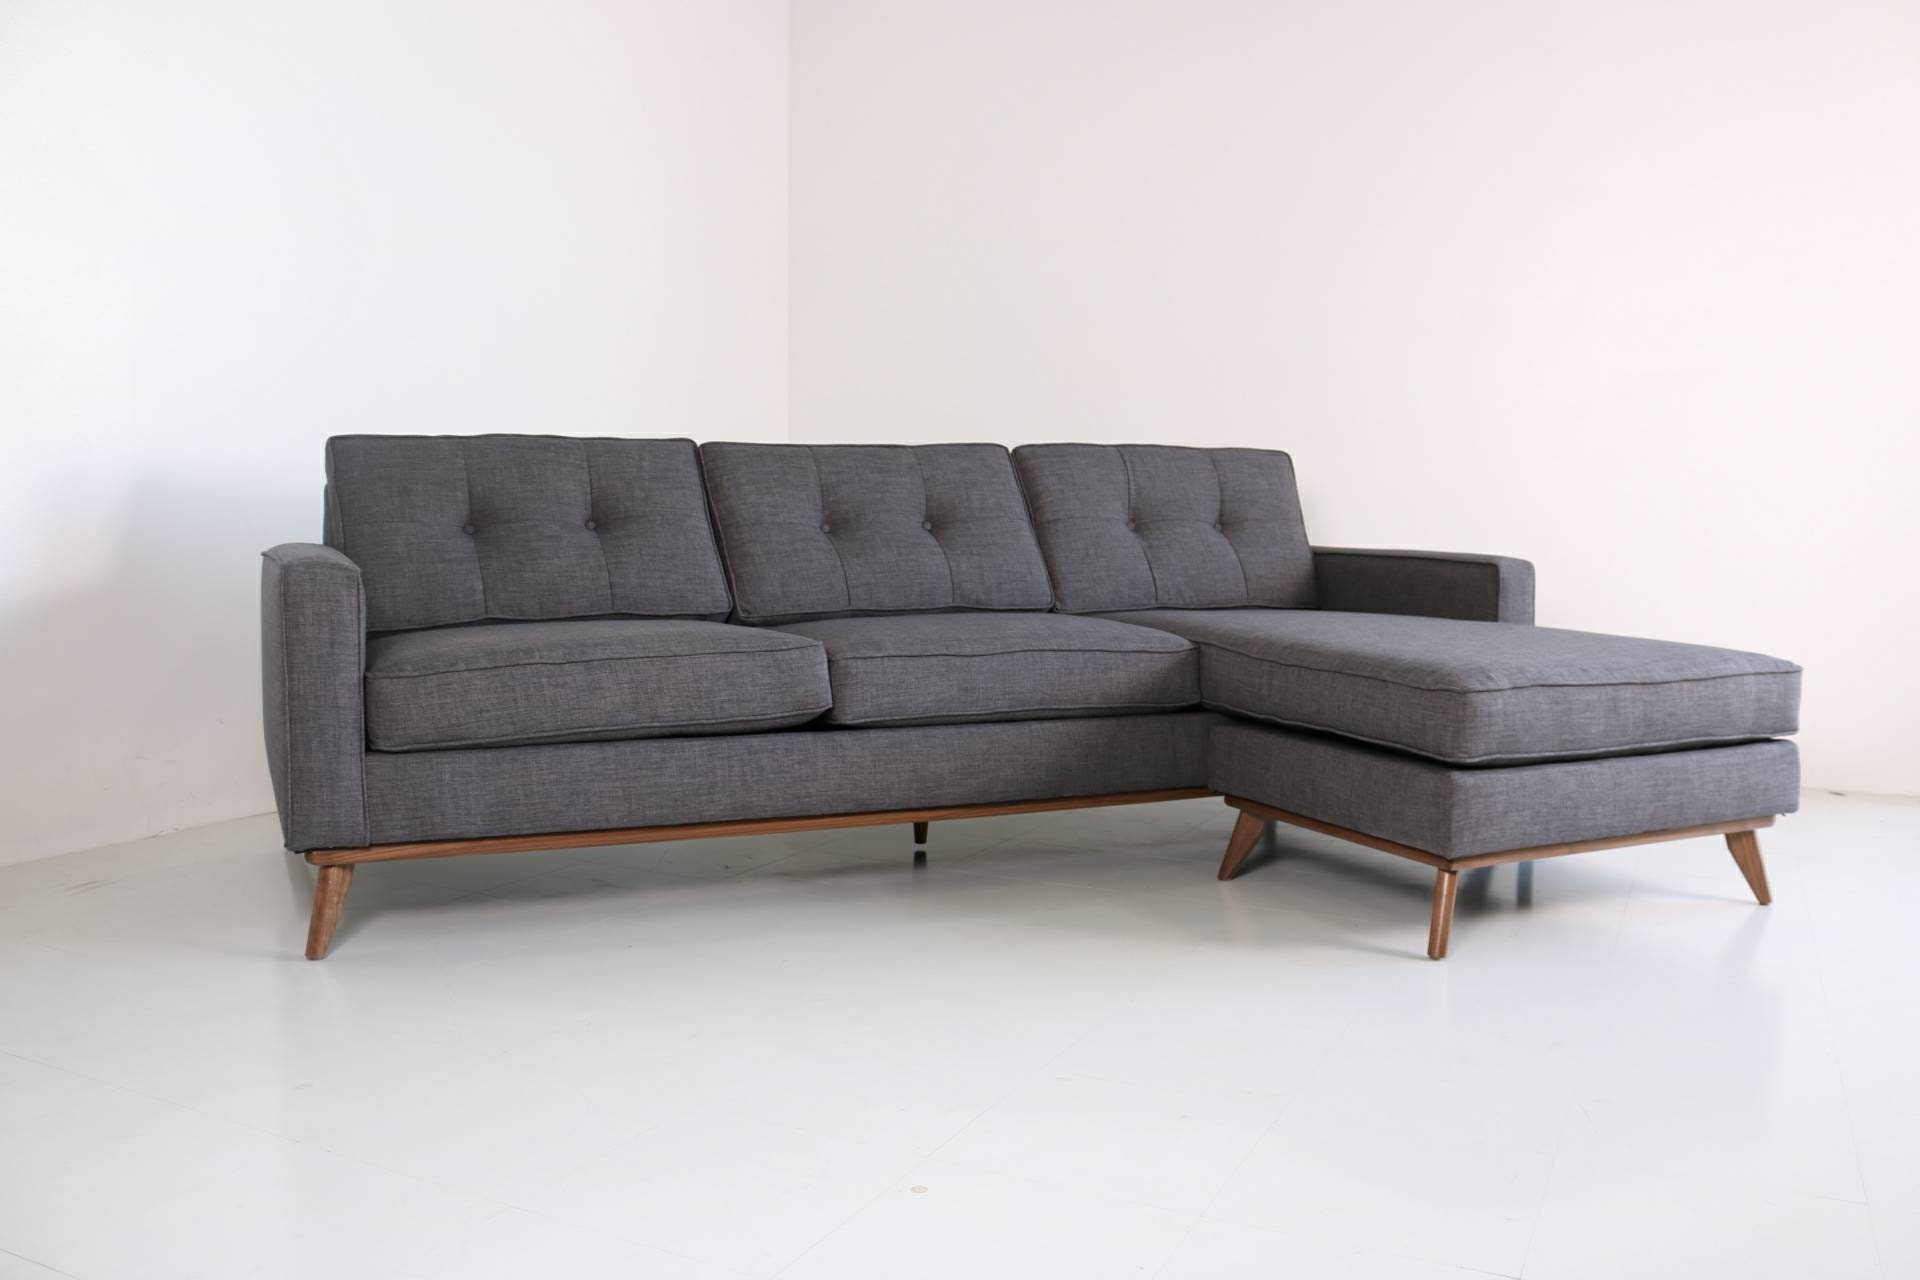 Mid Century Modern Danish Sofa Sectional Chaise Reversible For Trendy Alani Mid Century Modern Sectional Sofas With Chaise (View 7 of 25)